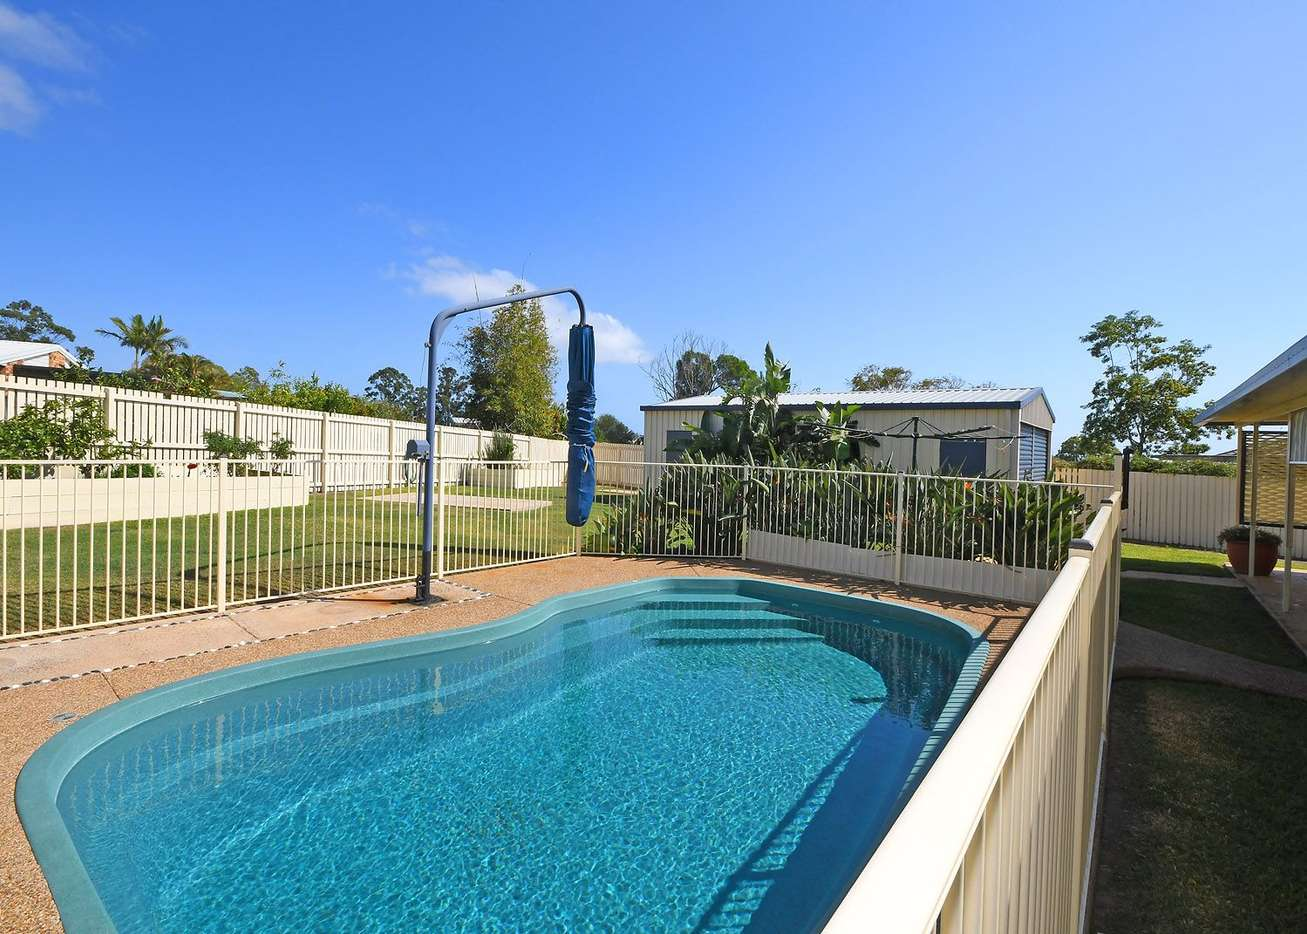 Main view of Homely house listing, 21 Ian Avenue, Kawungan, QLD 4655